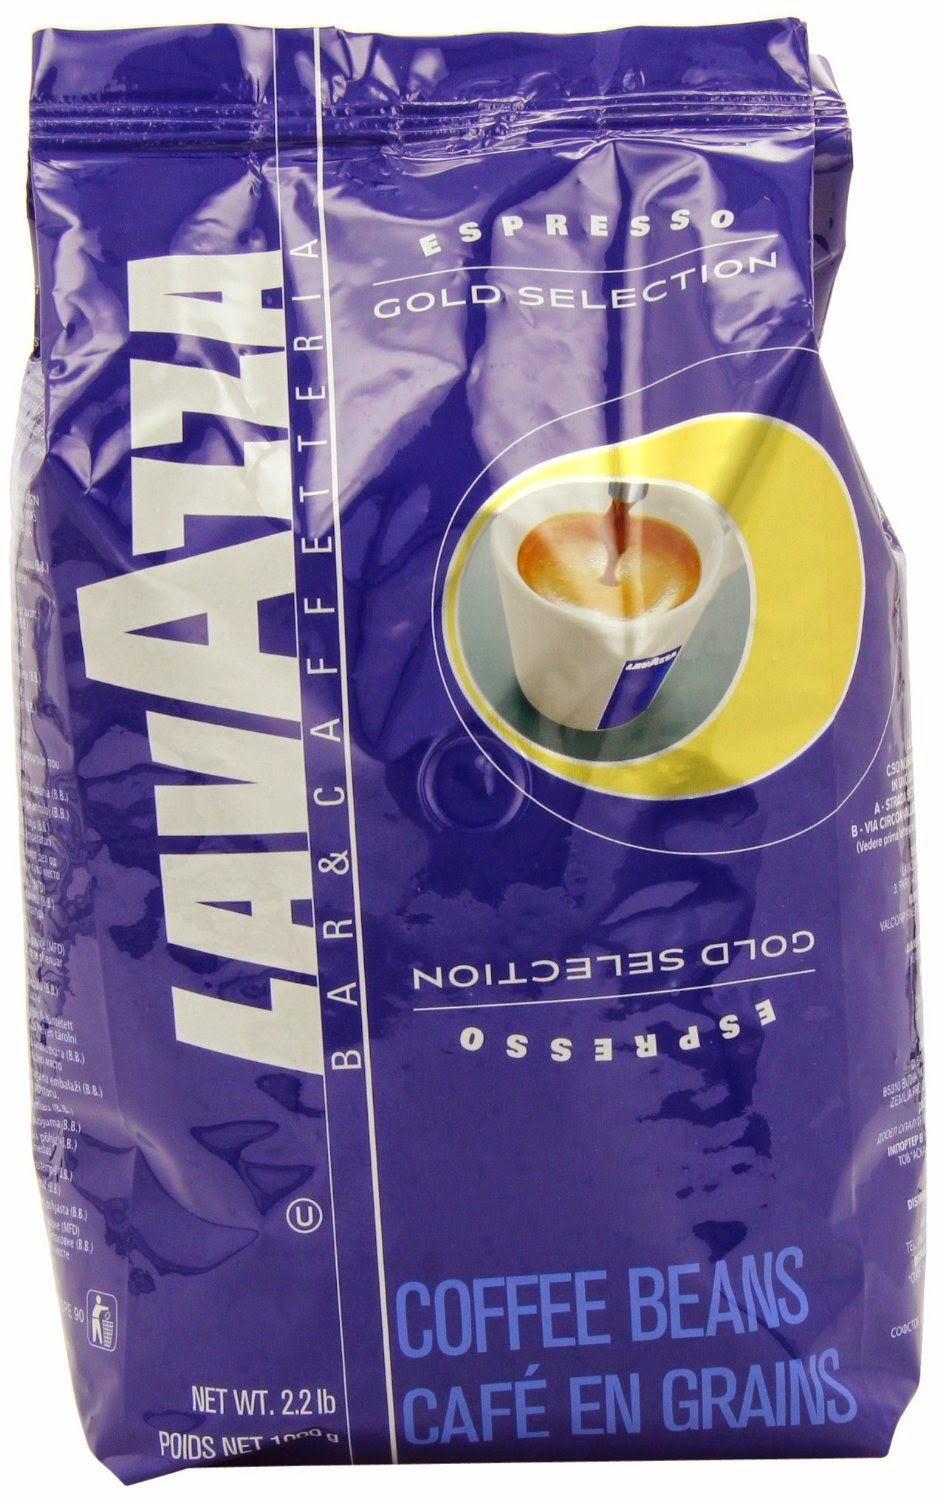 Best lavazza coffee reviewed in february 2021 is all here. The Watery Gourmet Product Review Lavazza Gold Selection Coffee